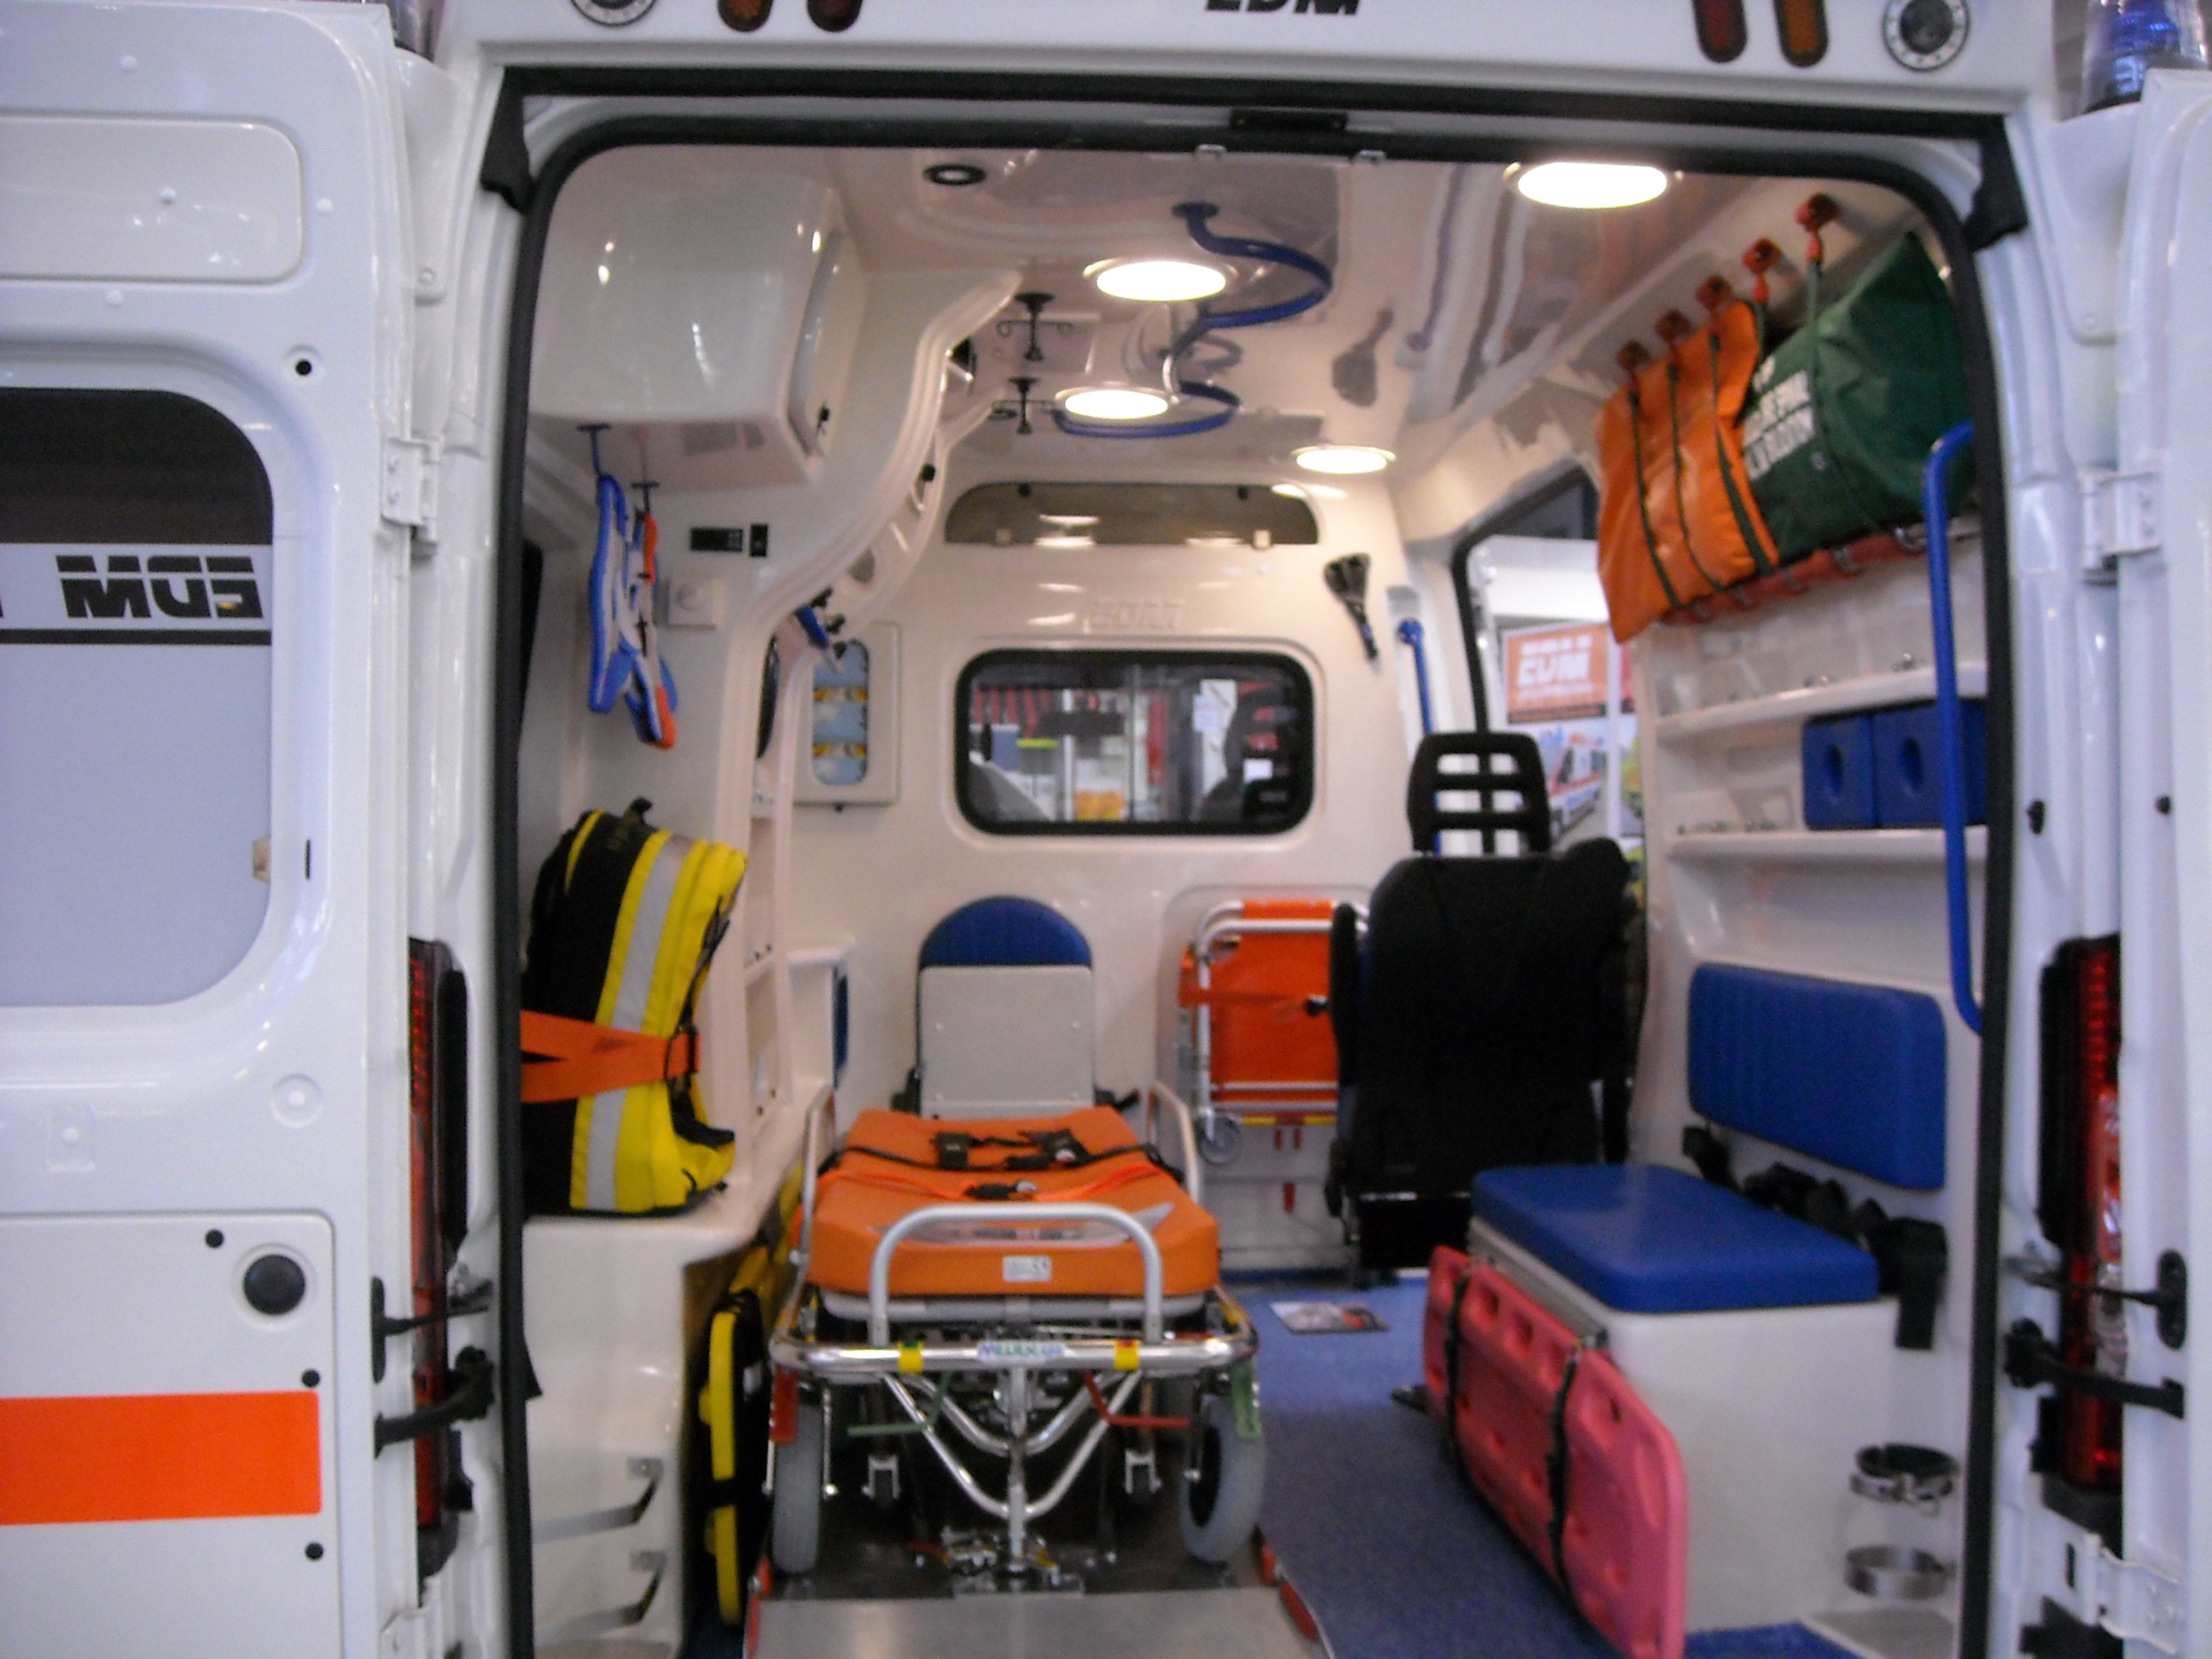 Ambulancier : la désinfection de l'ambulance